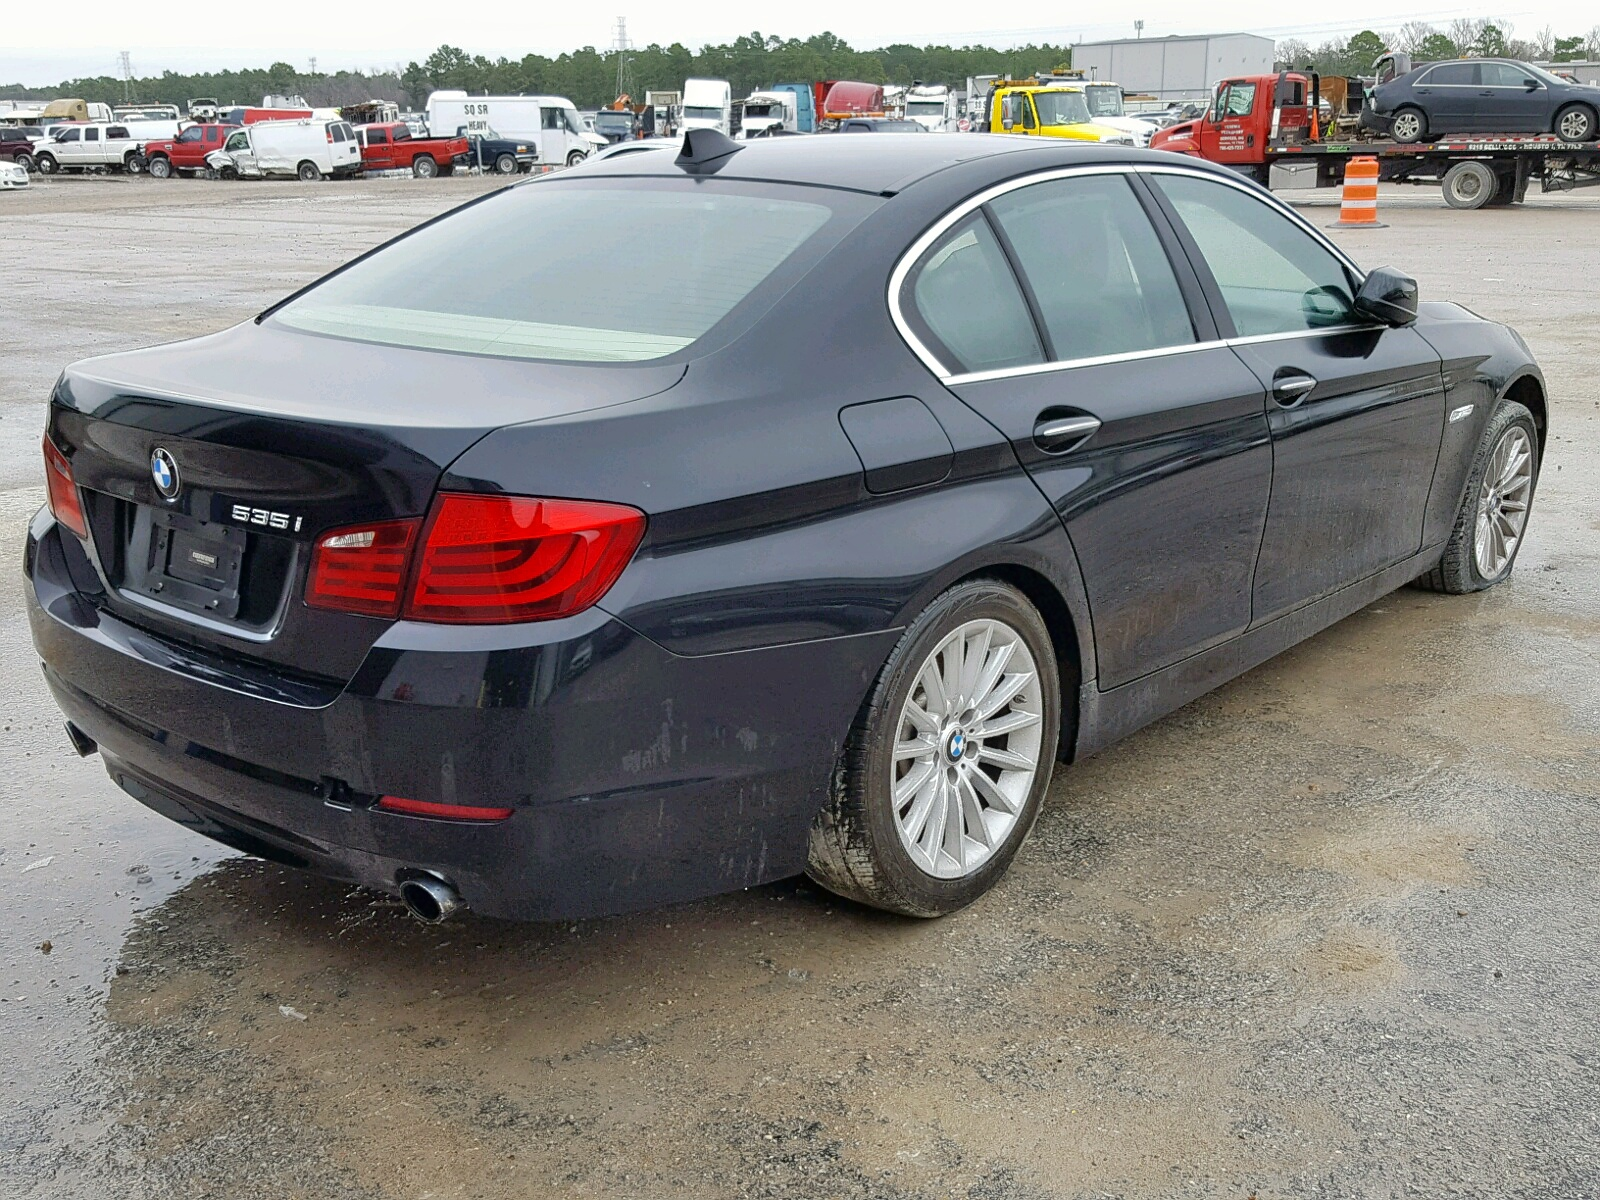 WBAFR7C51BC806279 - 2011 Bmw 535 I 3.0L rear view